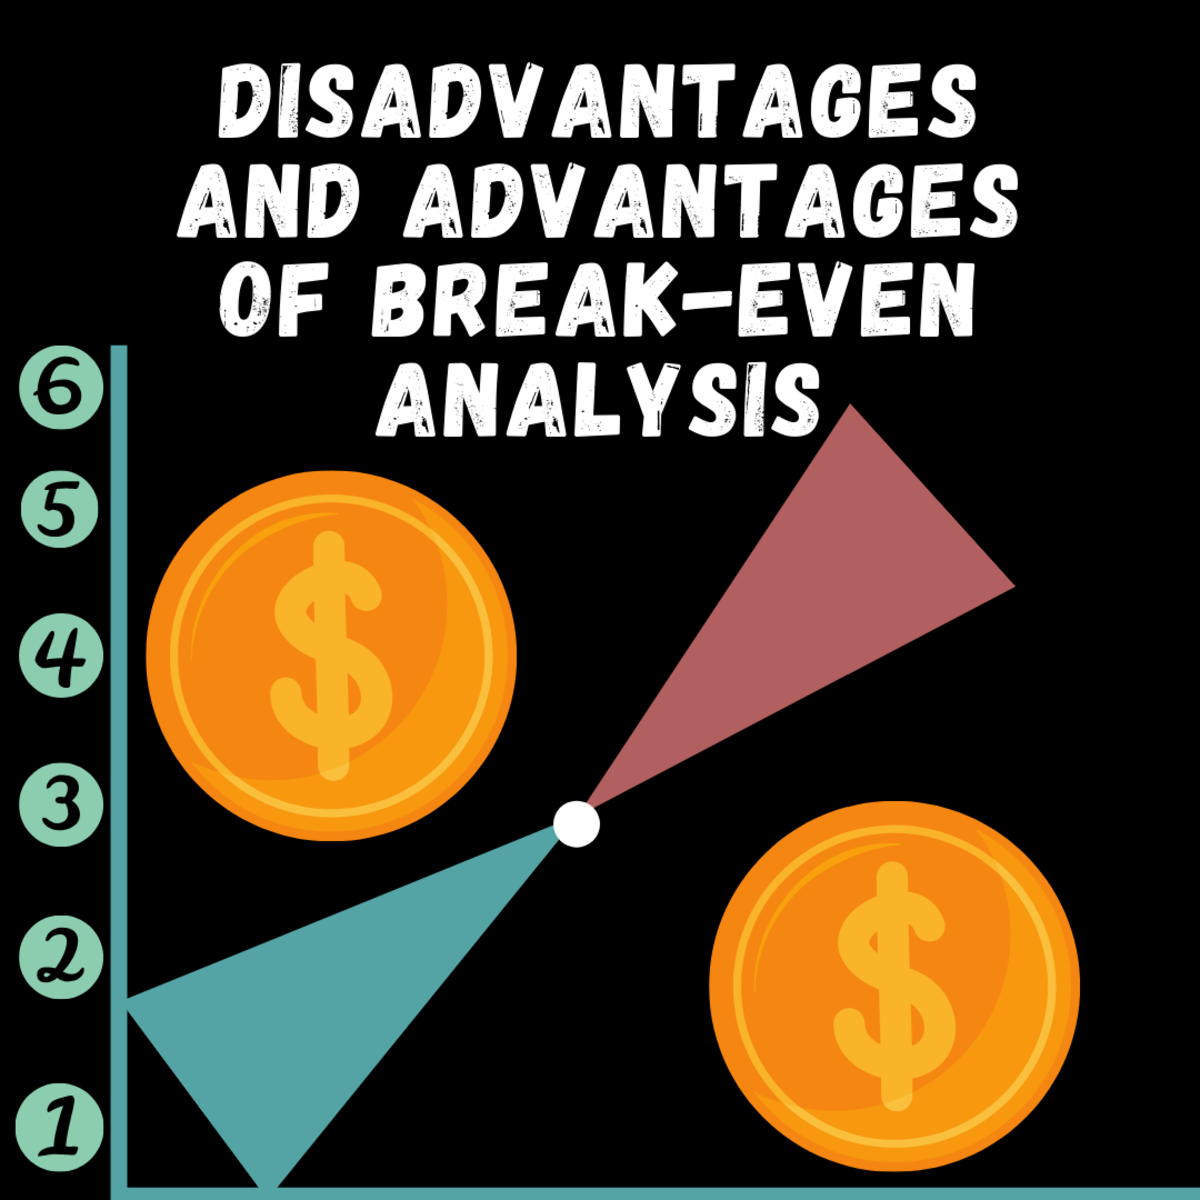 Read on to learn how a break-even analysis can help you better understand business.